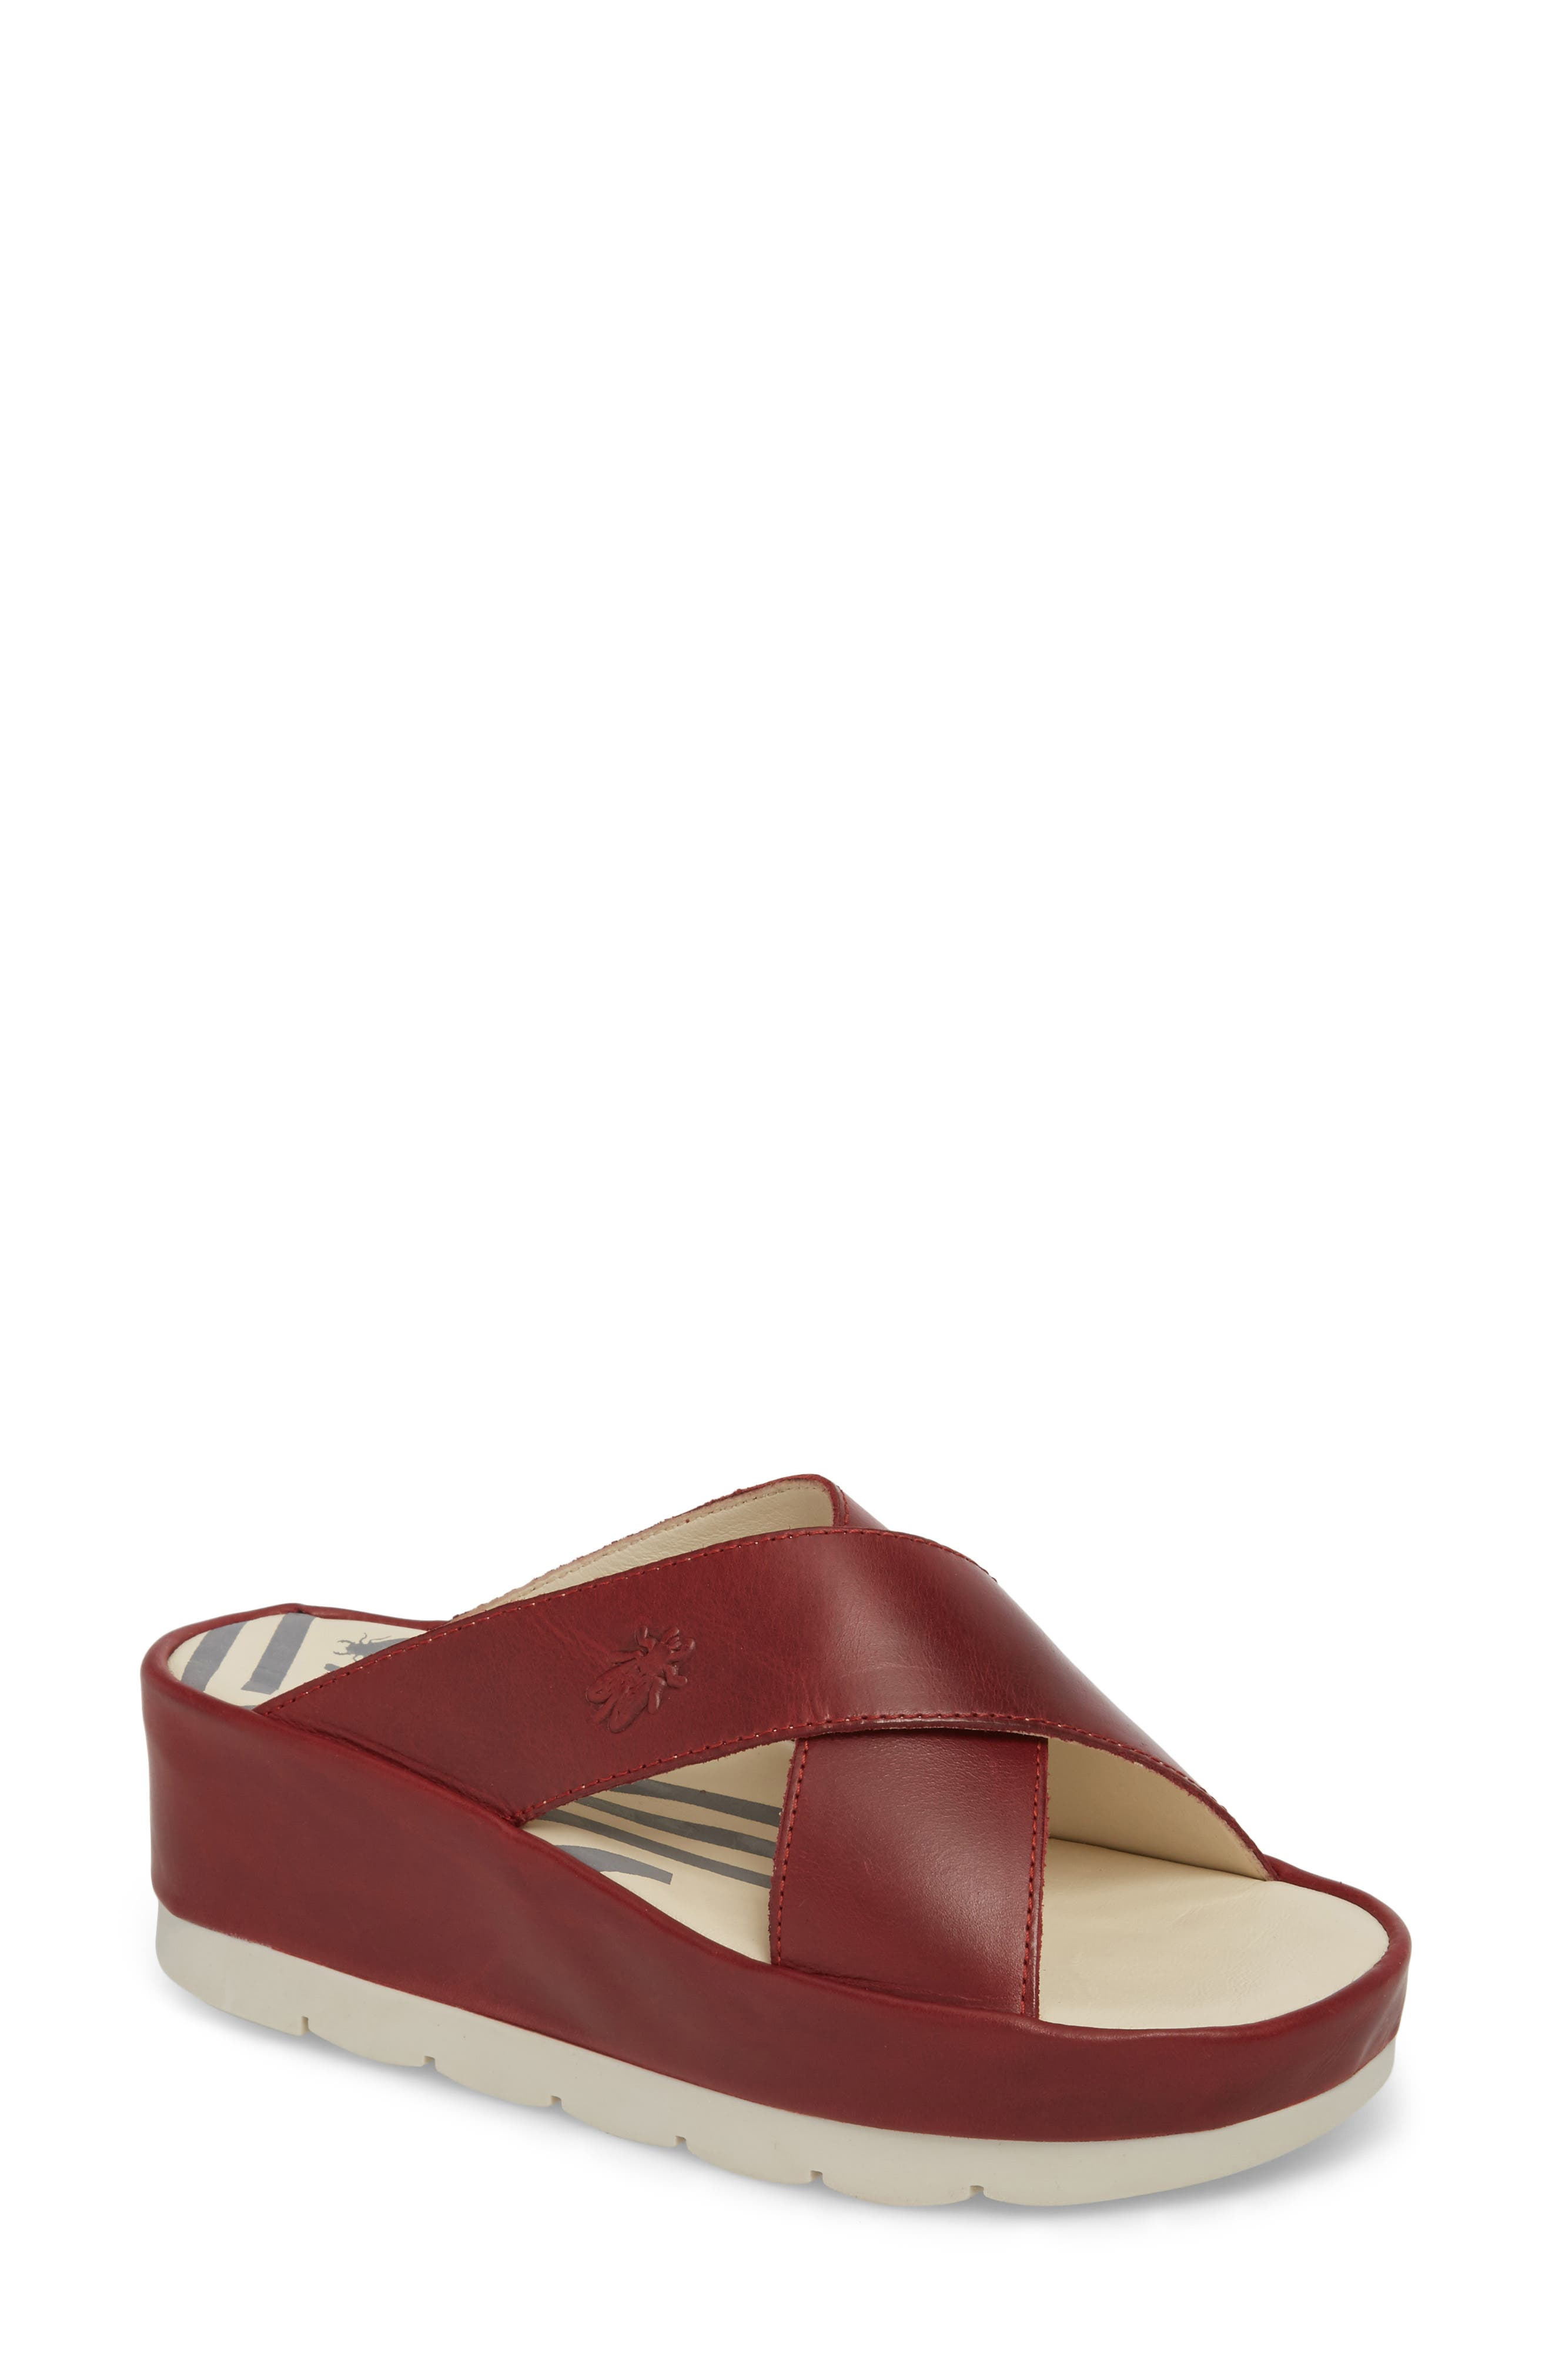 Fly London Begs Platform Slide Sandal, Red